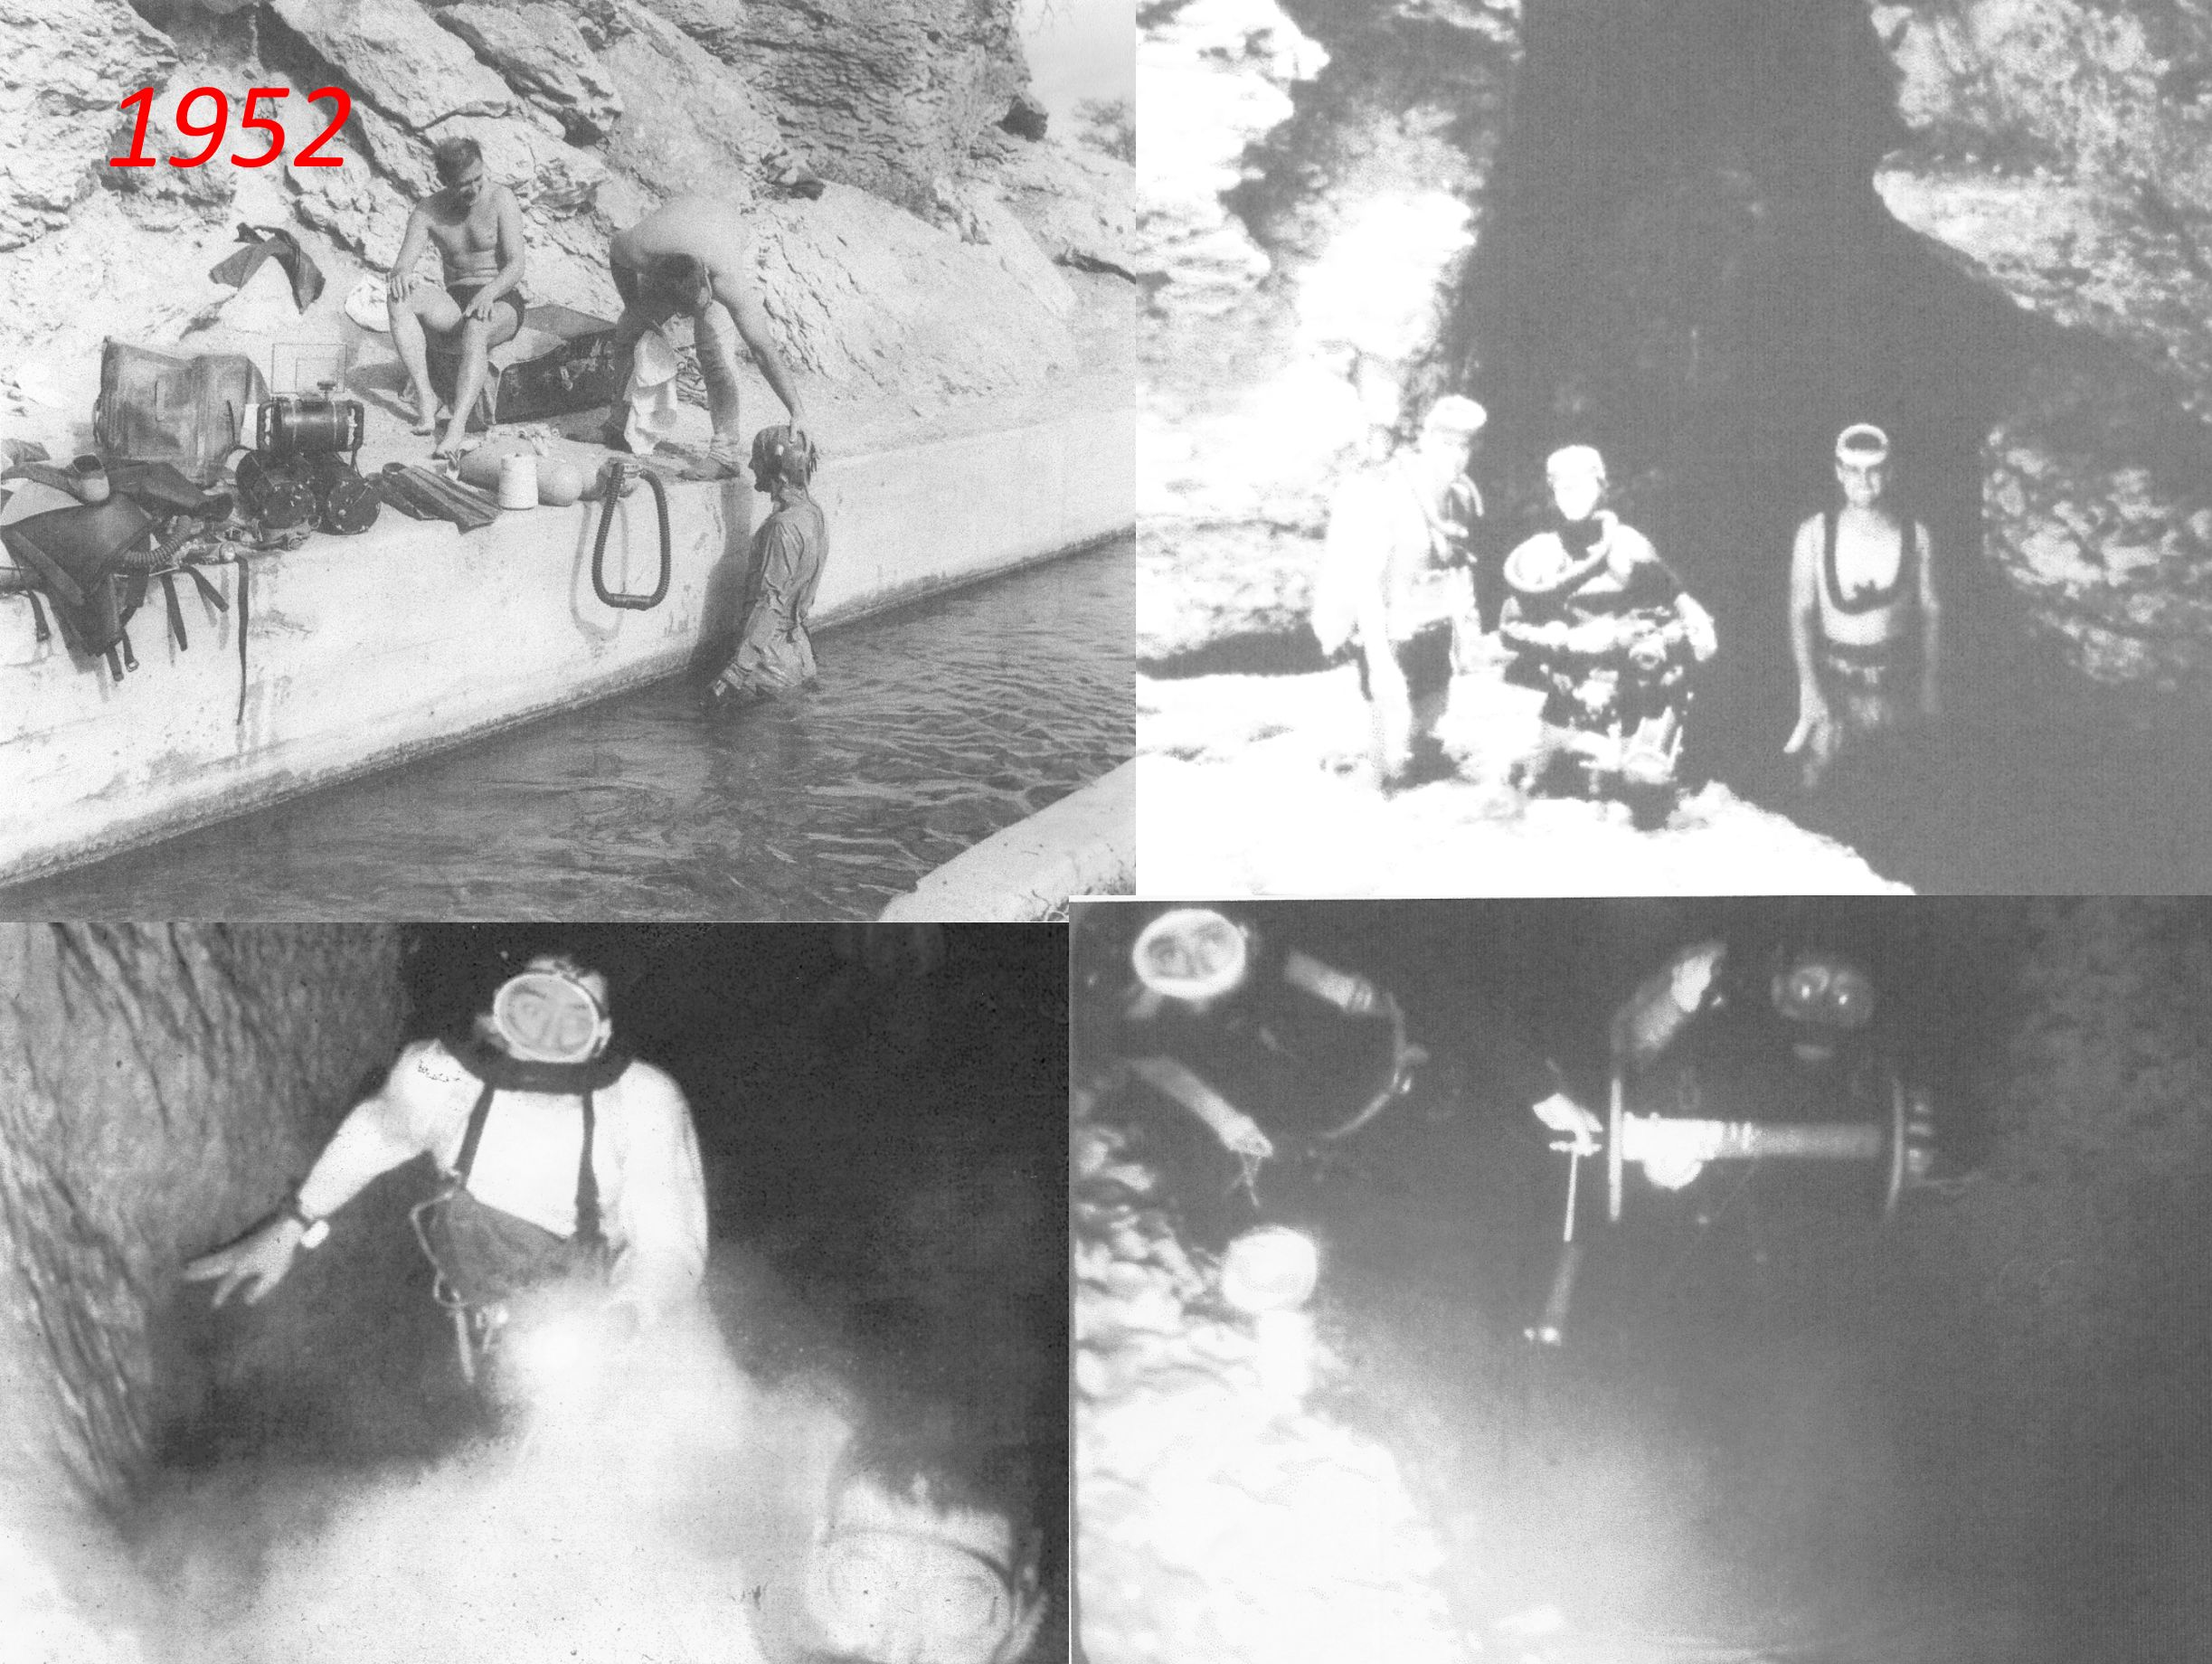 Early divers in Phantom Cave.